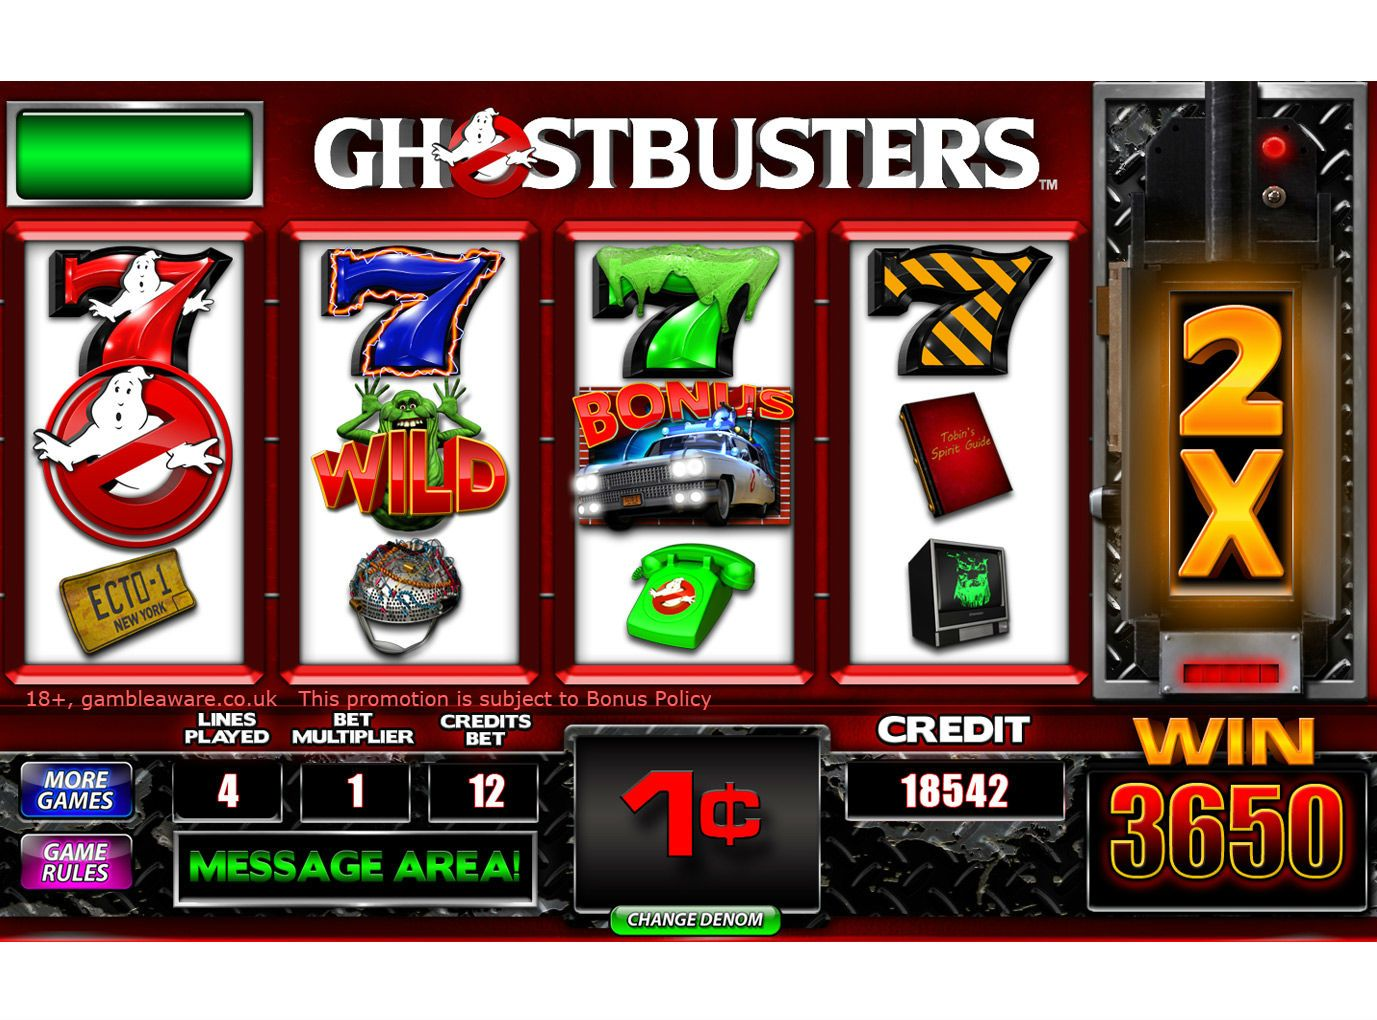 Ghostbusters Slot Machine Online Free